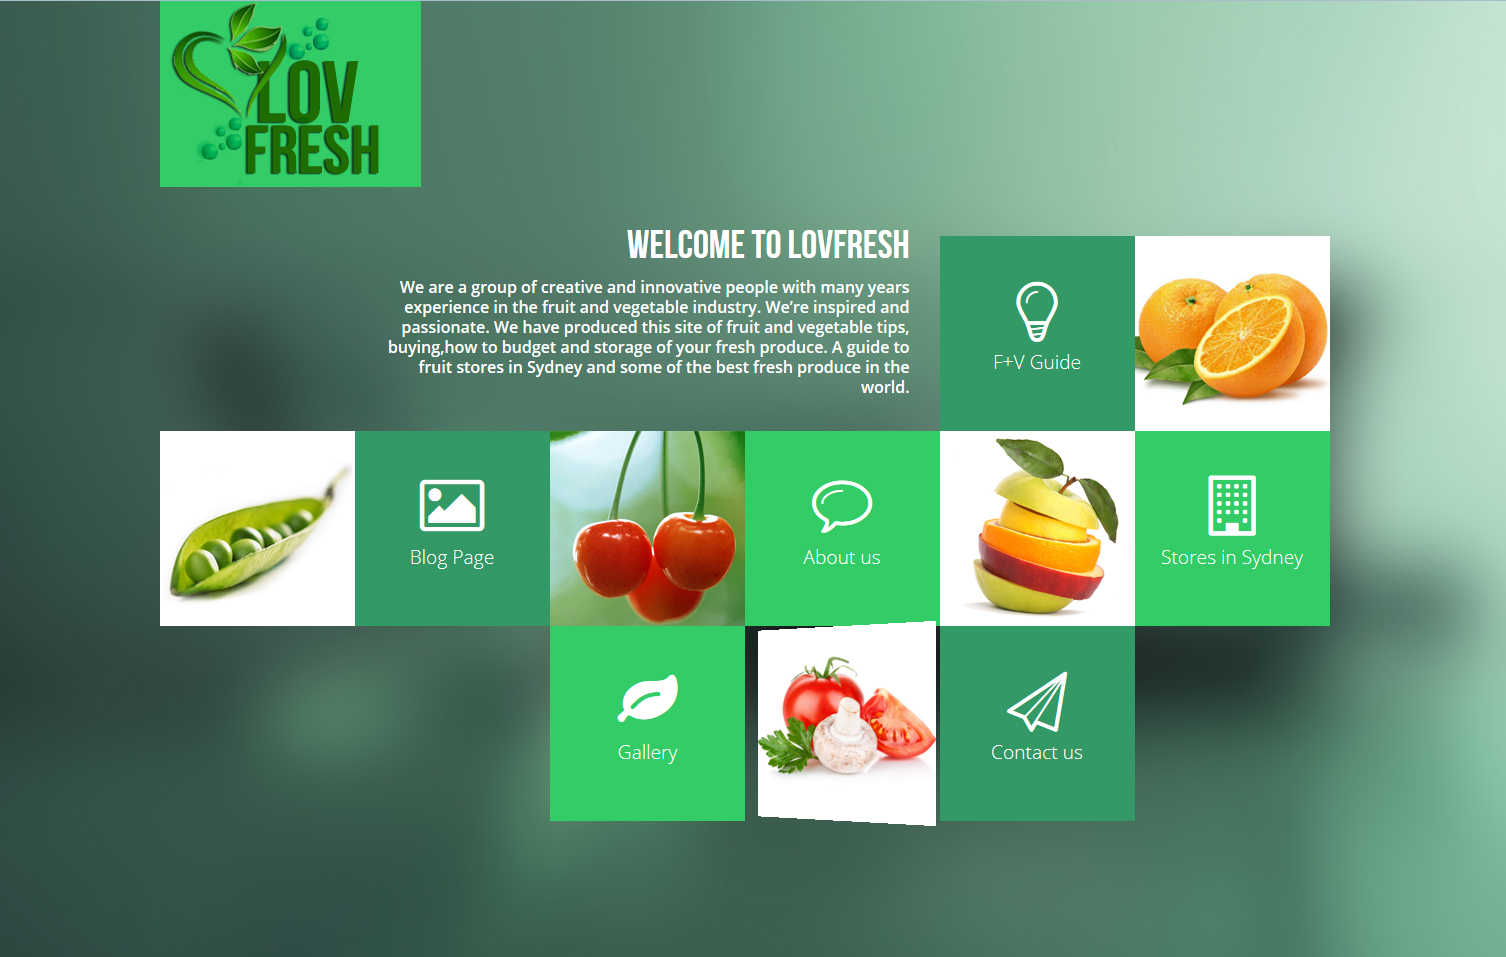 I'll design fully Responsive WORDPRESS site for